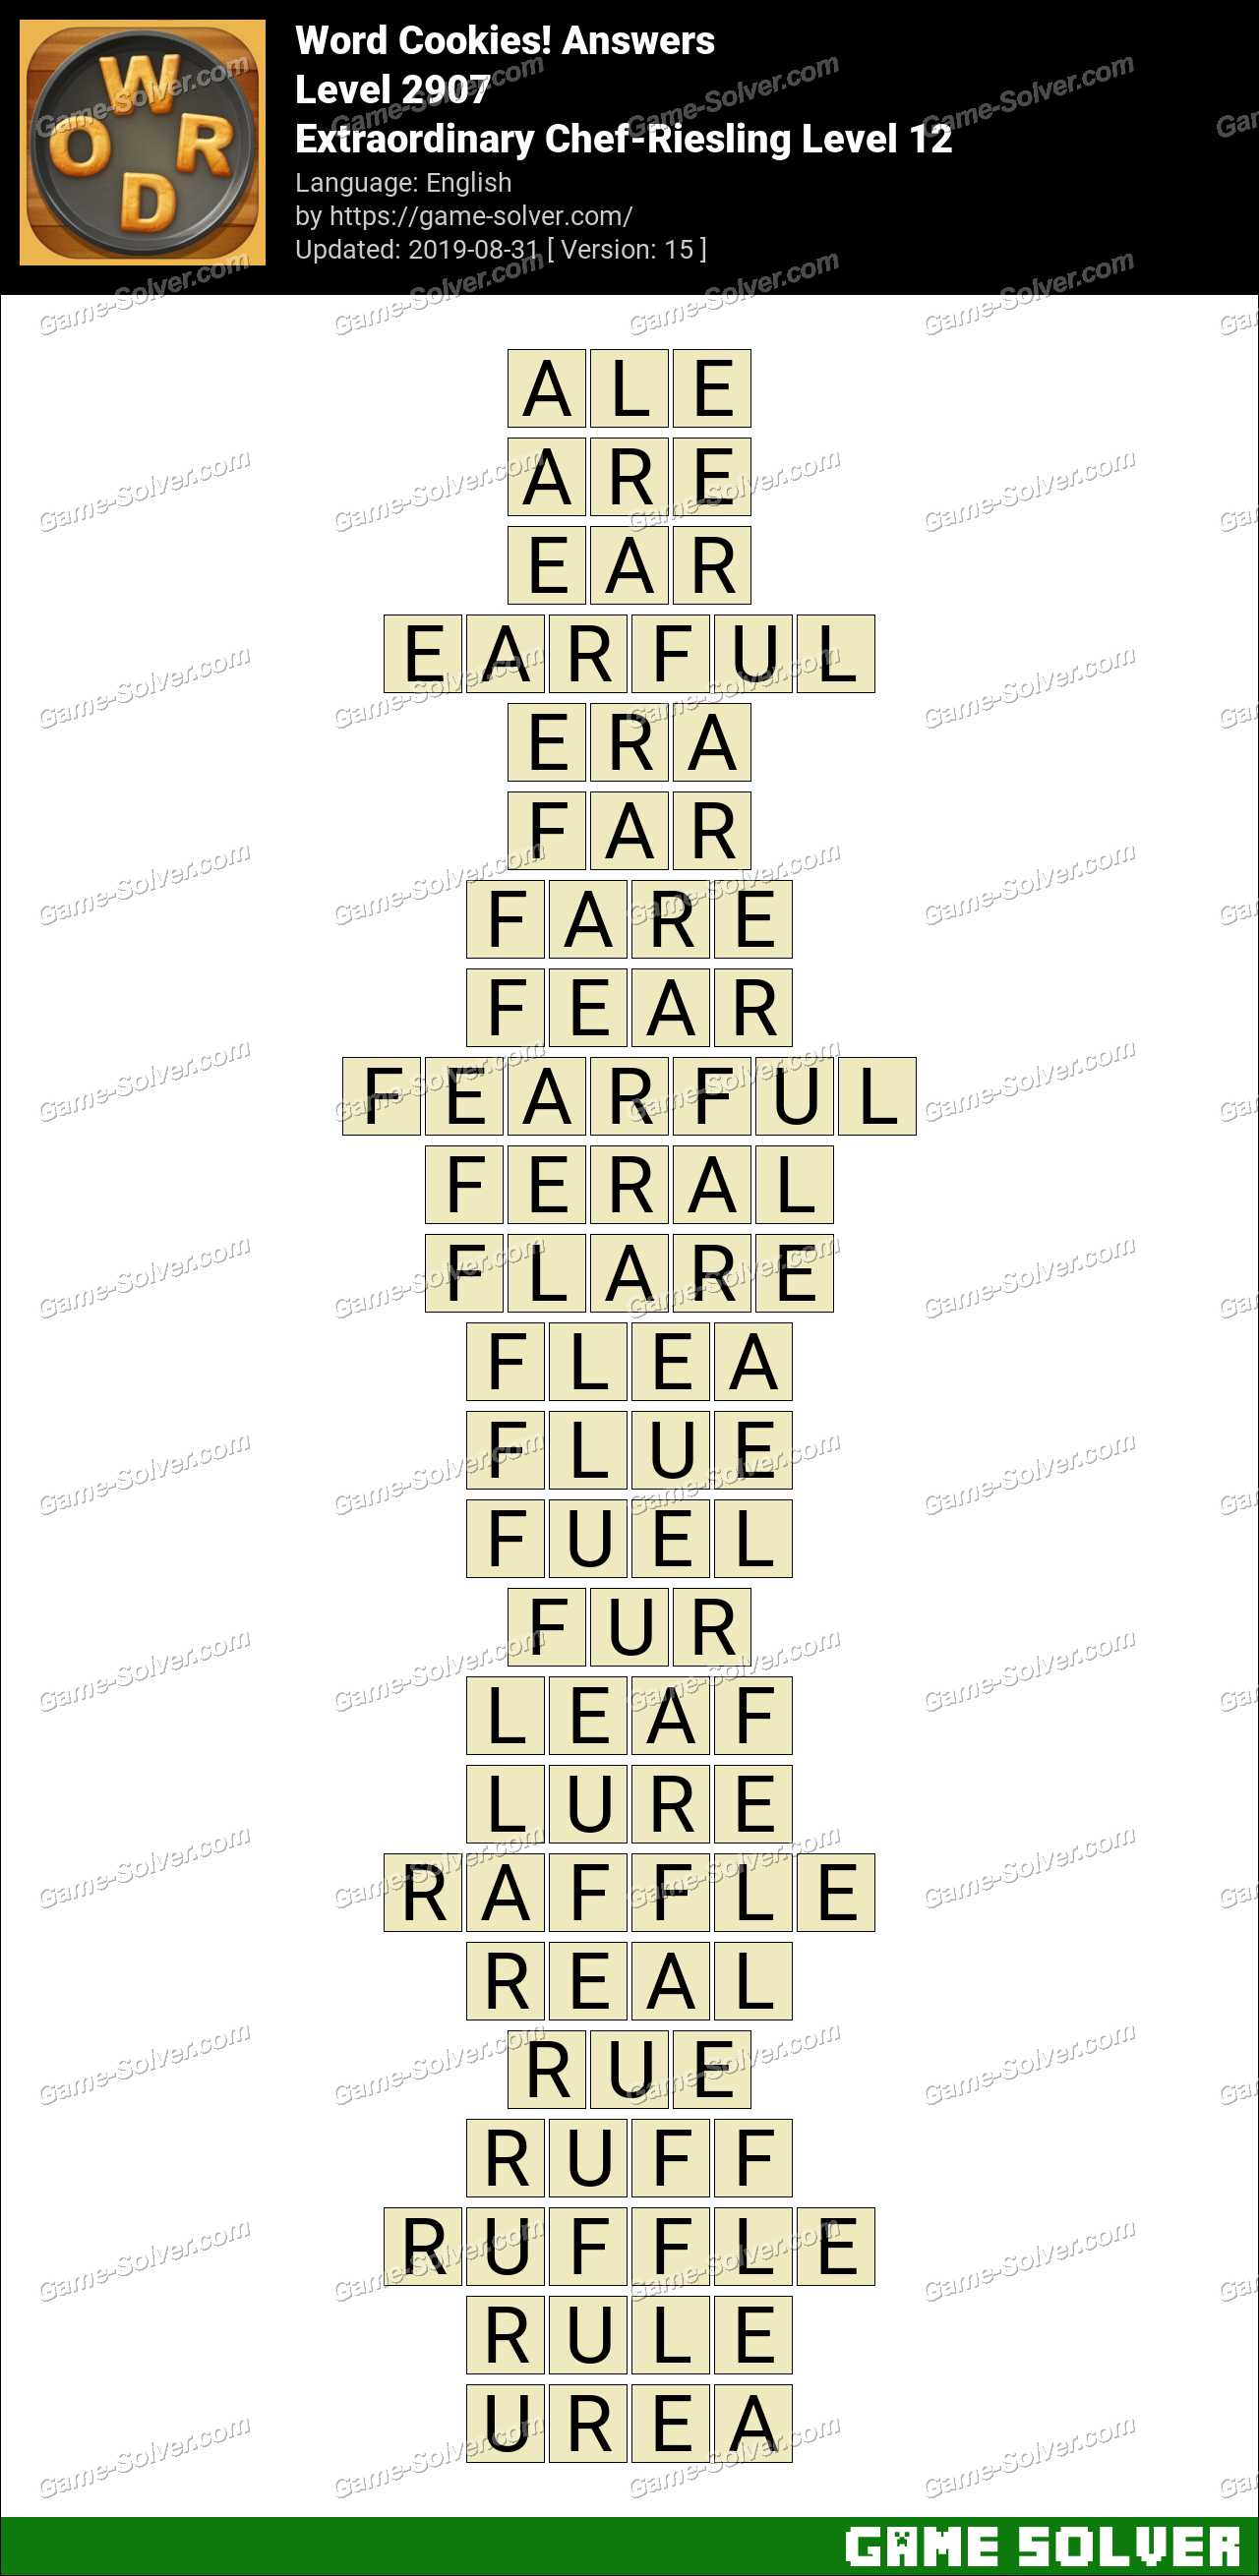 Word Cookies Extraordinary Chef-Riesling Level 12 Answers